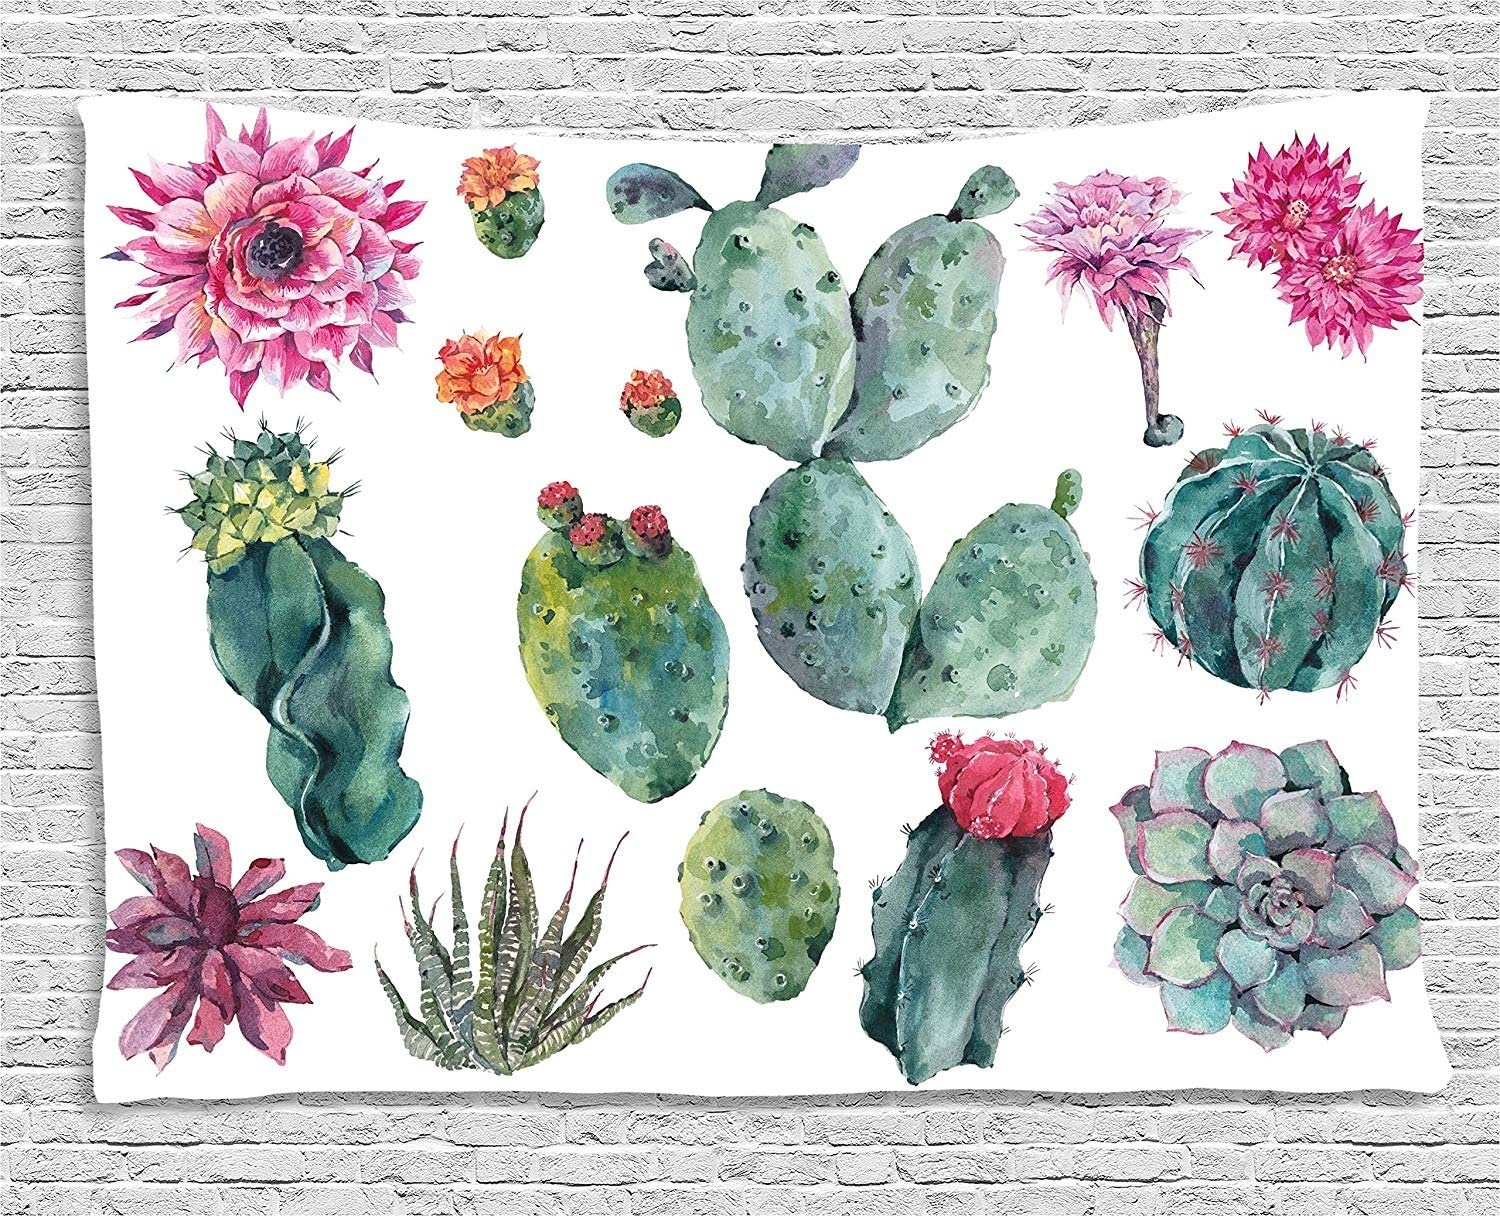 Ambesonne Nature Tapestry, Desert Botanical Herbal Cartoon Style Cactus Plant Flower with Spikes Print, Wide Wall Hanging for Bedroom Living Room Dorm, 80